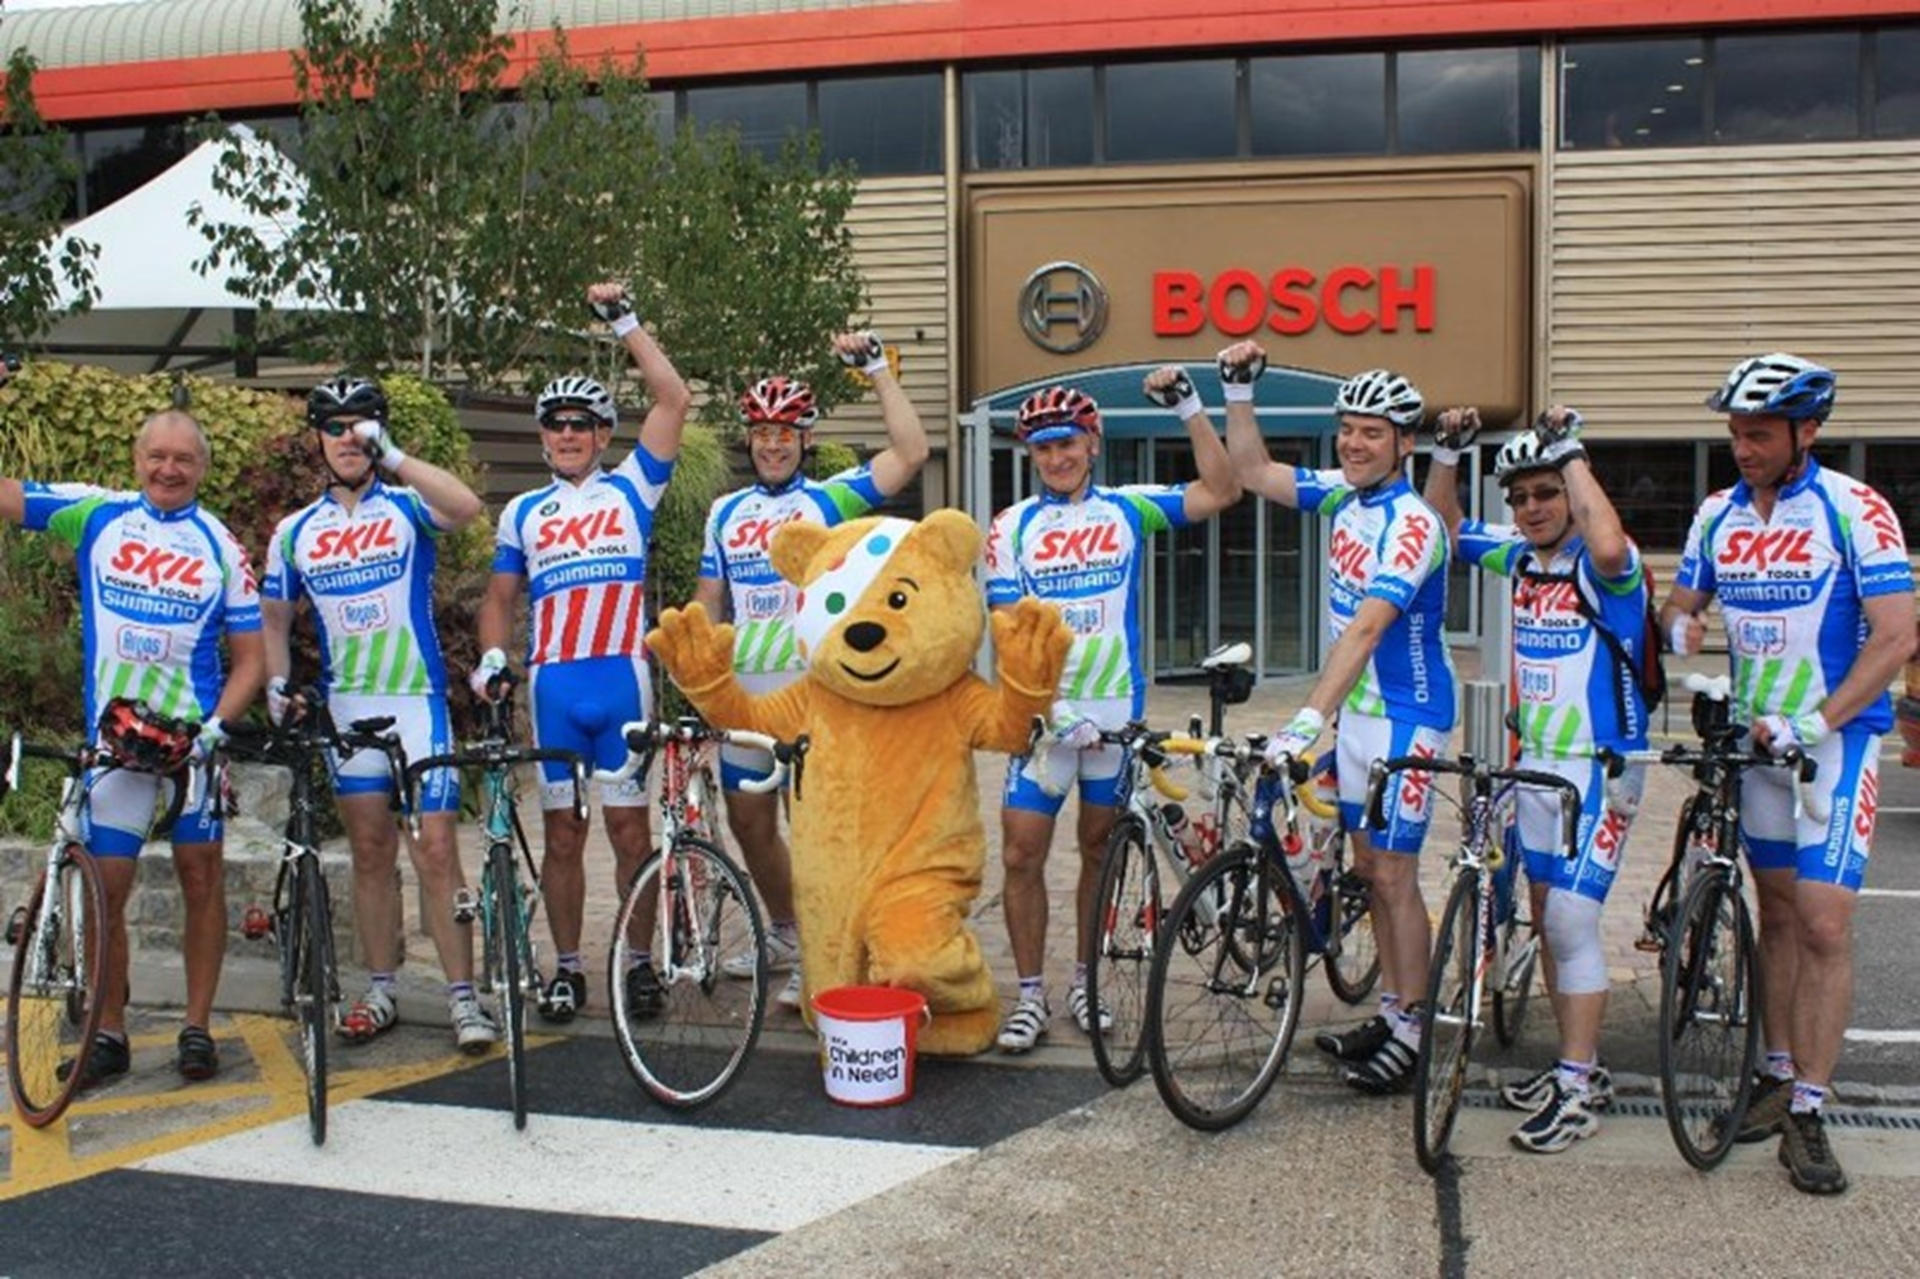 Children in Need cycling bosch skil